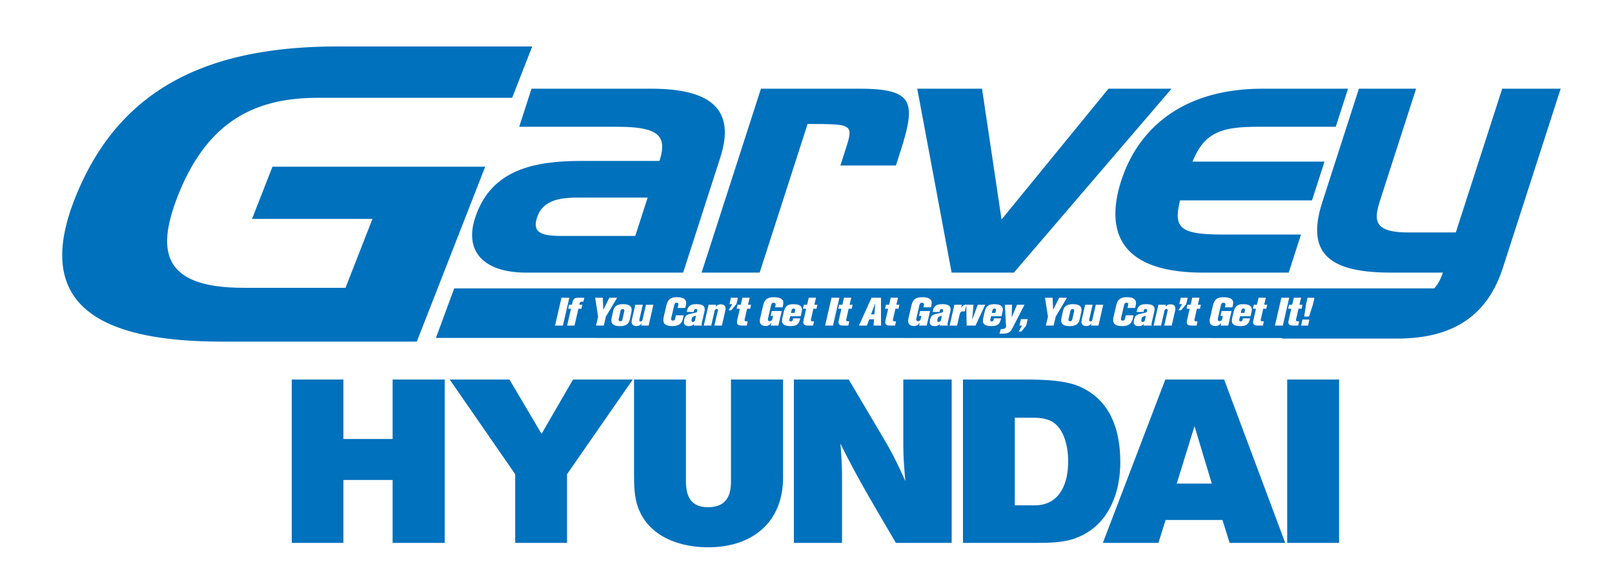 Garvey Hyundai - Queensbury, NY: Read Consumer reviews, Browse Used